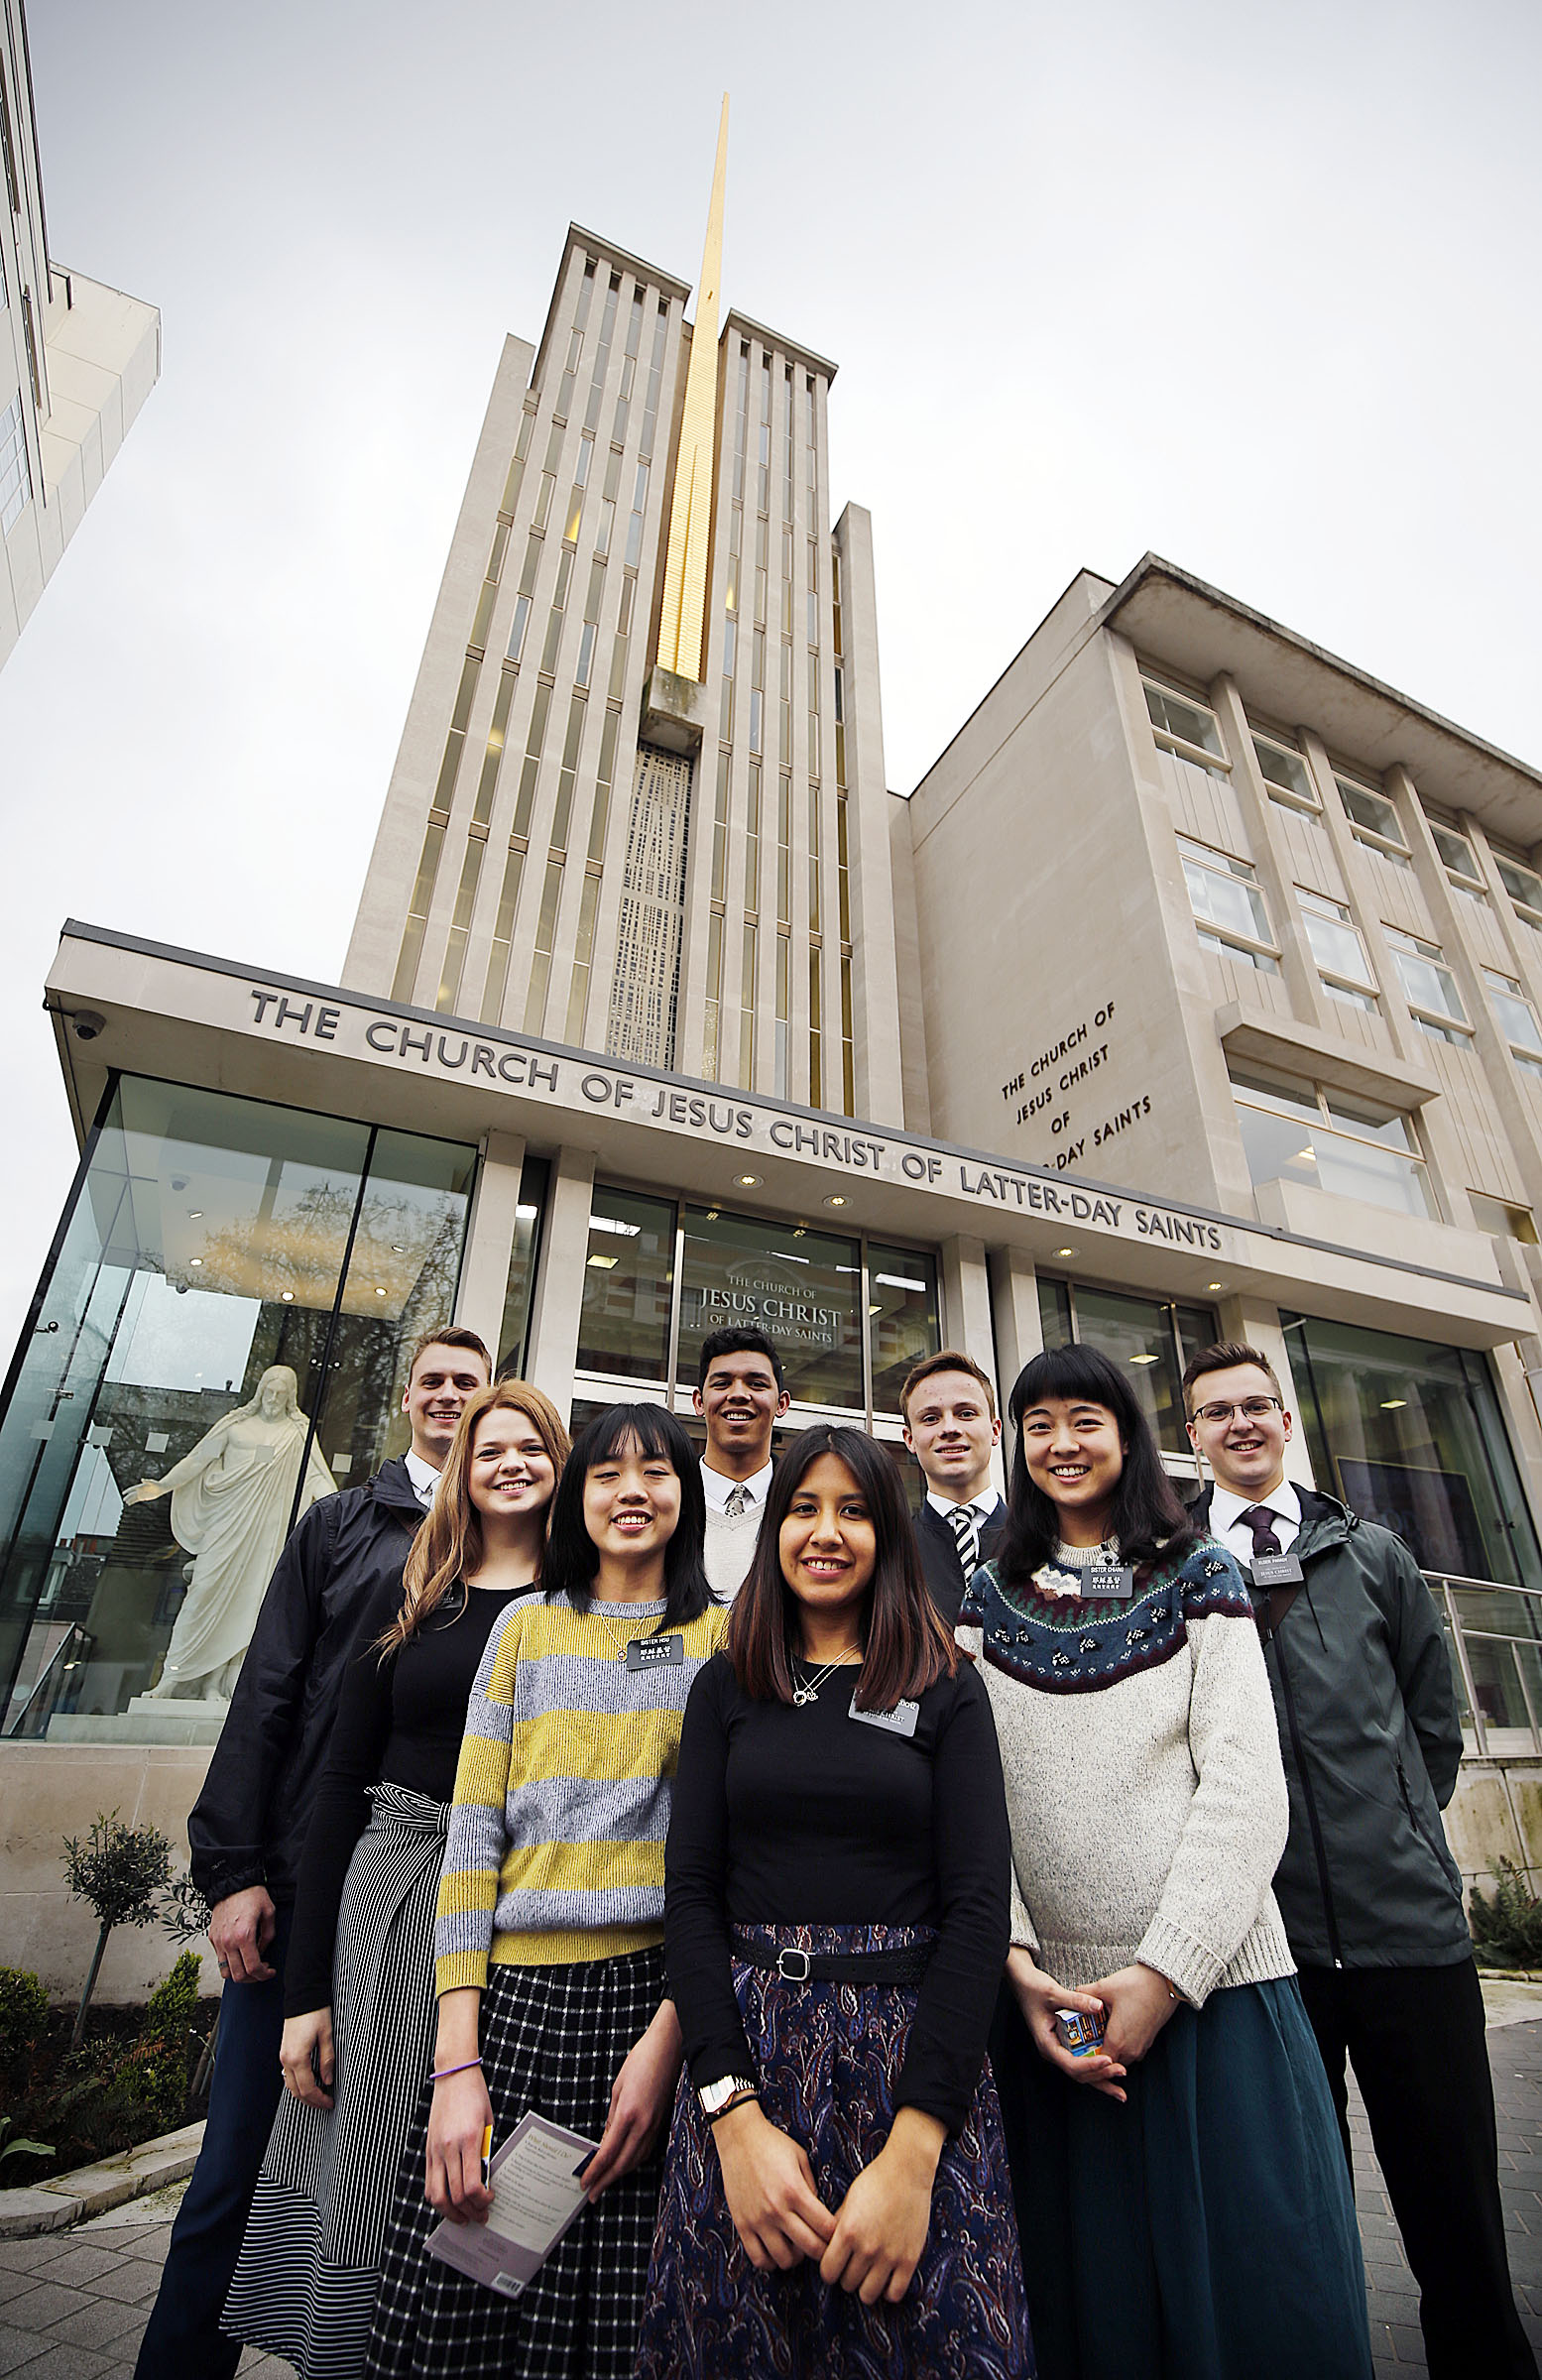 Missionaries pose for a photo in front of the Hyde Park Chapel of The Church of Jesus Christ of Latter-day Saints in London on Tuesday, April 10, 2018.